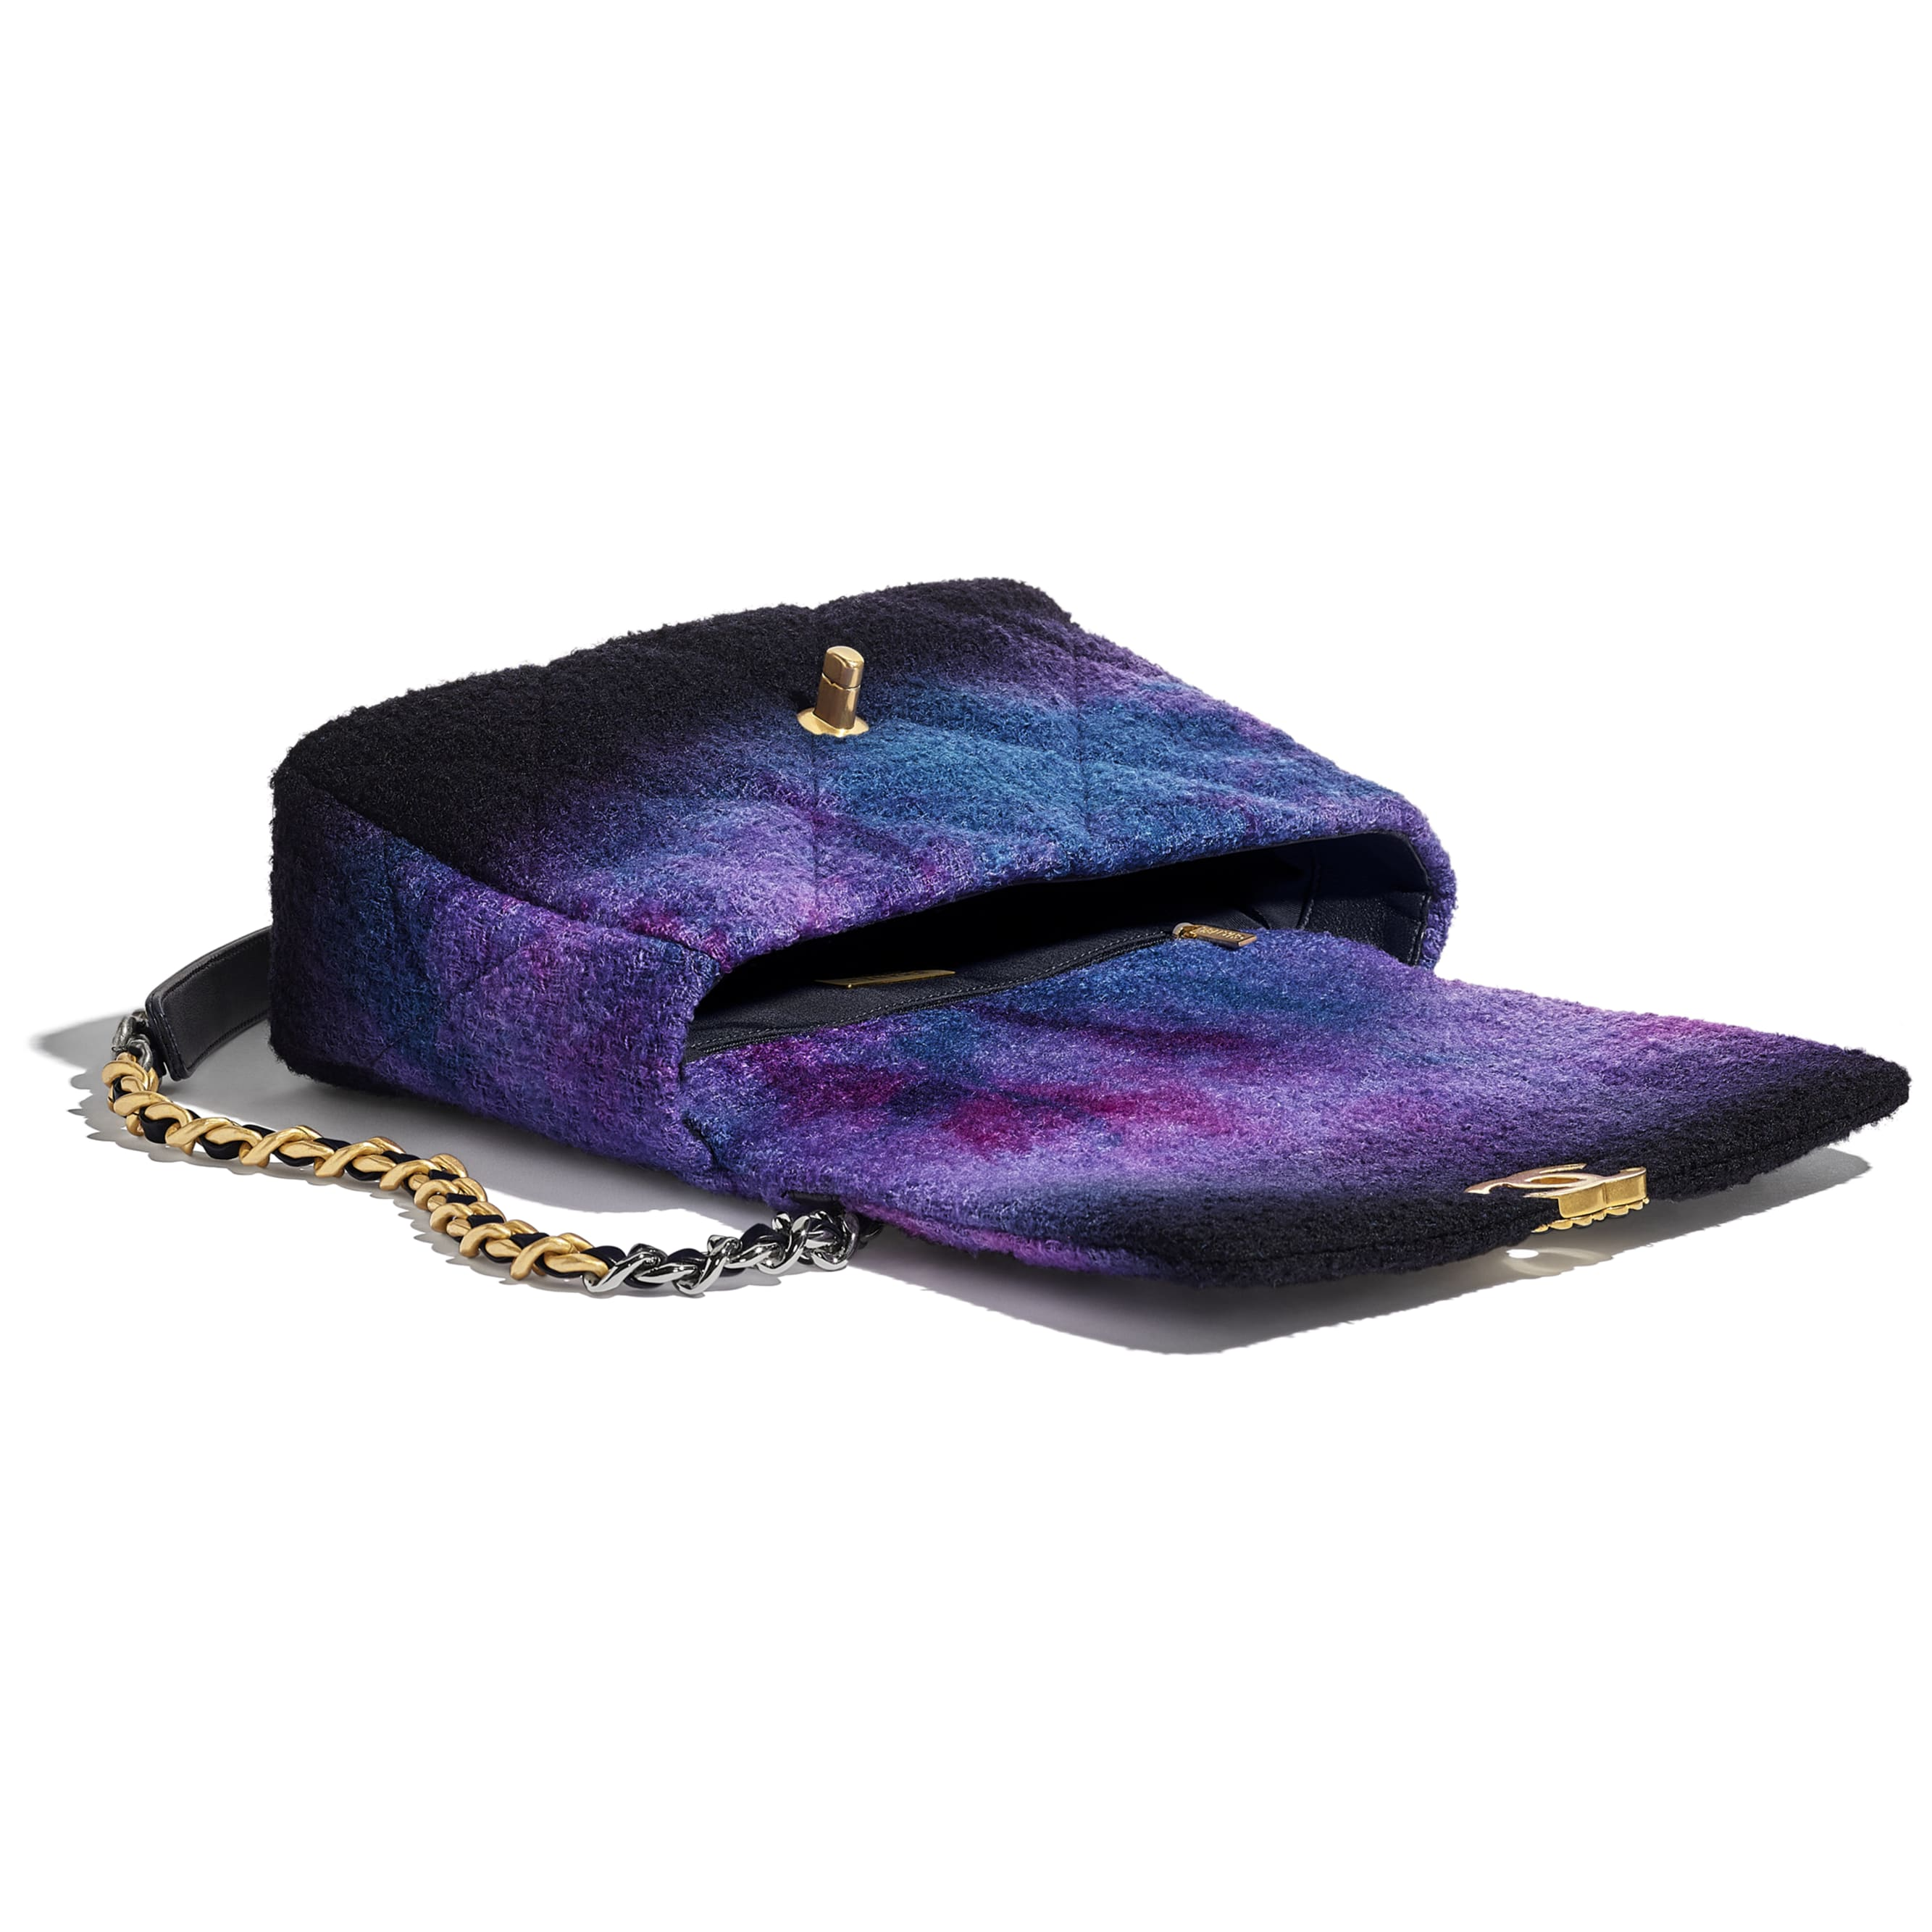 CHANEL 19 Large Flap Bag - Purple, Black & Blue - Wool Tweed, Gold-Tone, Silver-Tone & Ruthenium-Finish Metal - CHANEL - Other view - see standard sized version